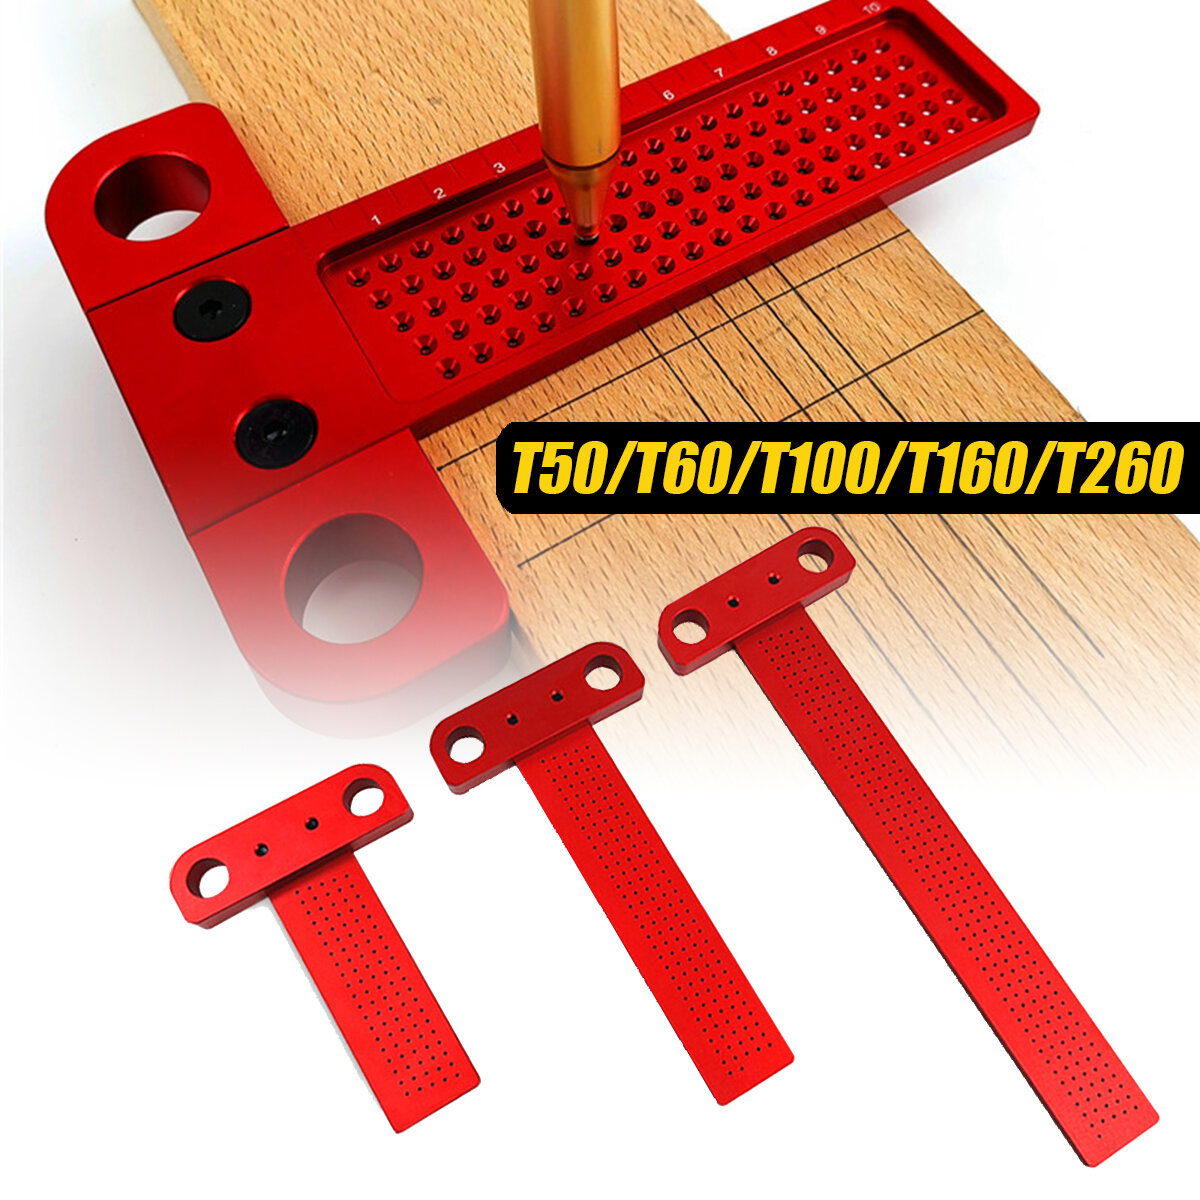 US T-50 Measuring Tool Woodworking T-Type Scribe Mark Measure Ruler Home